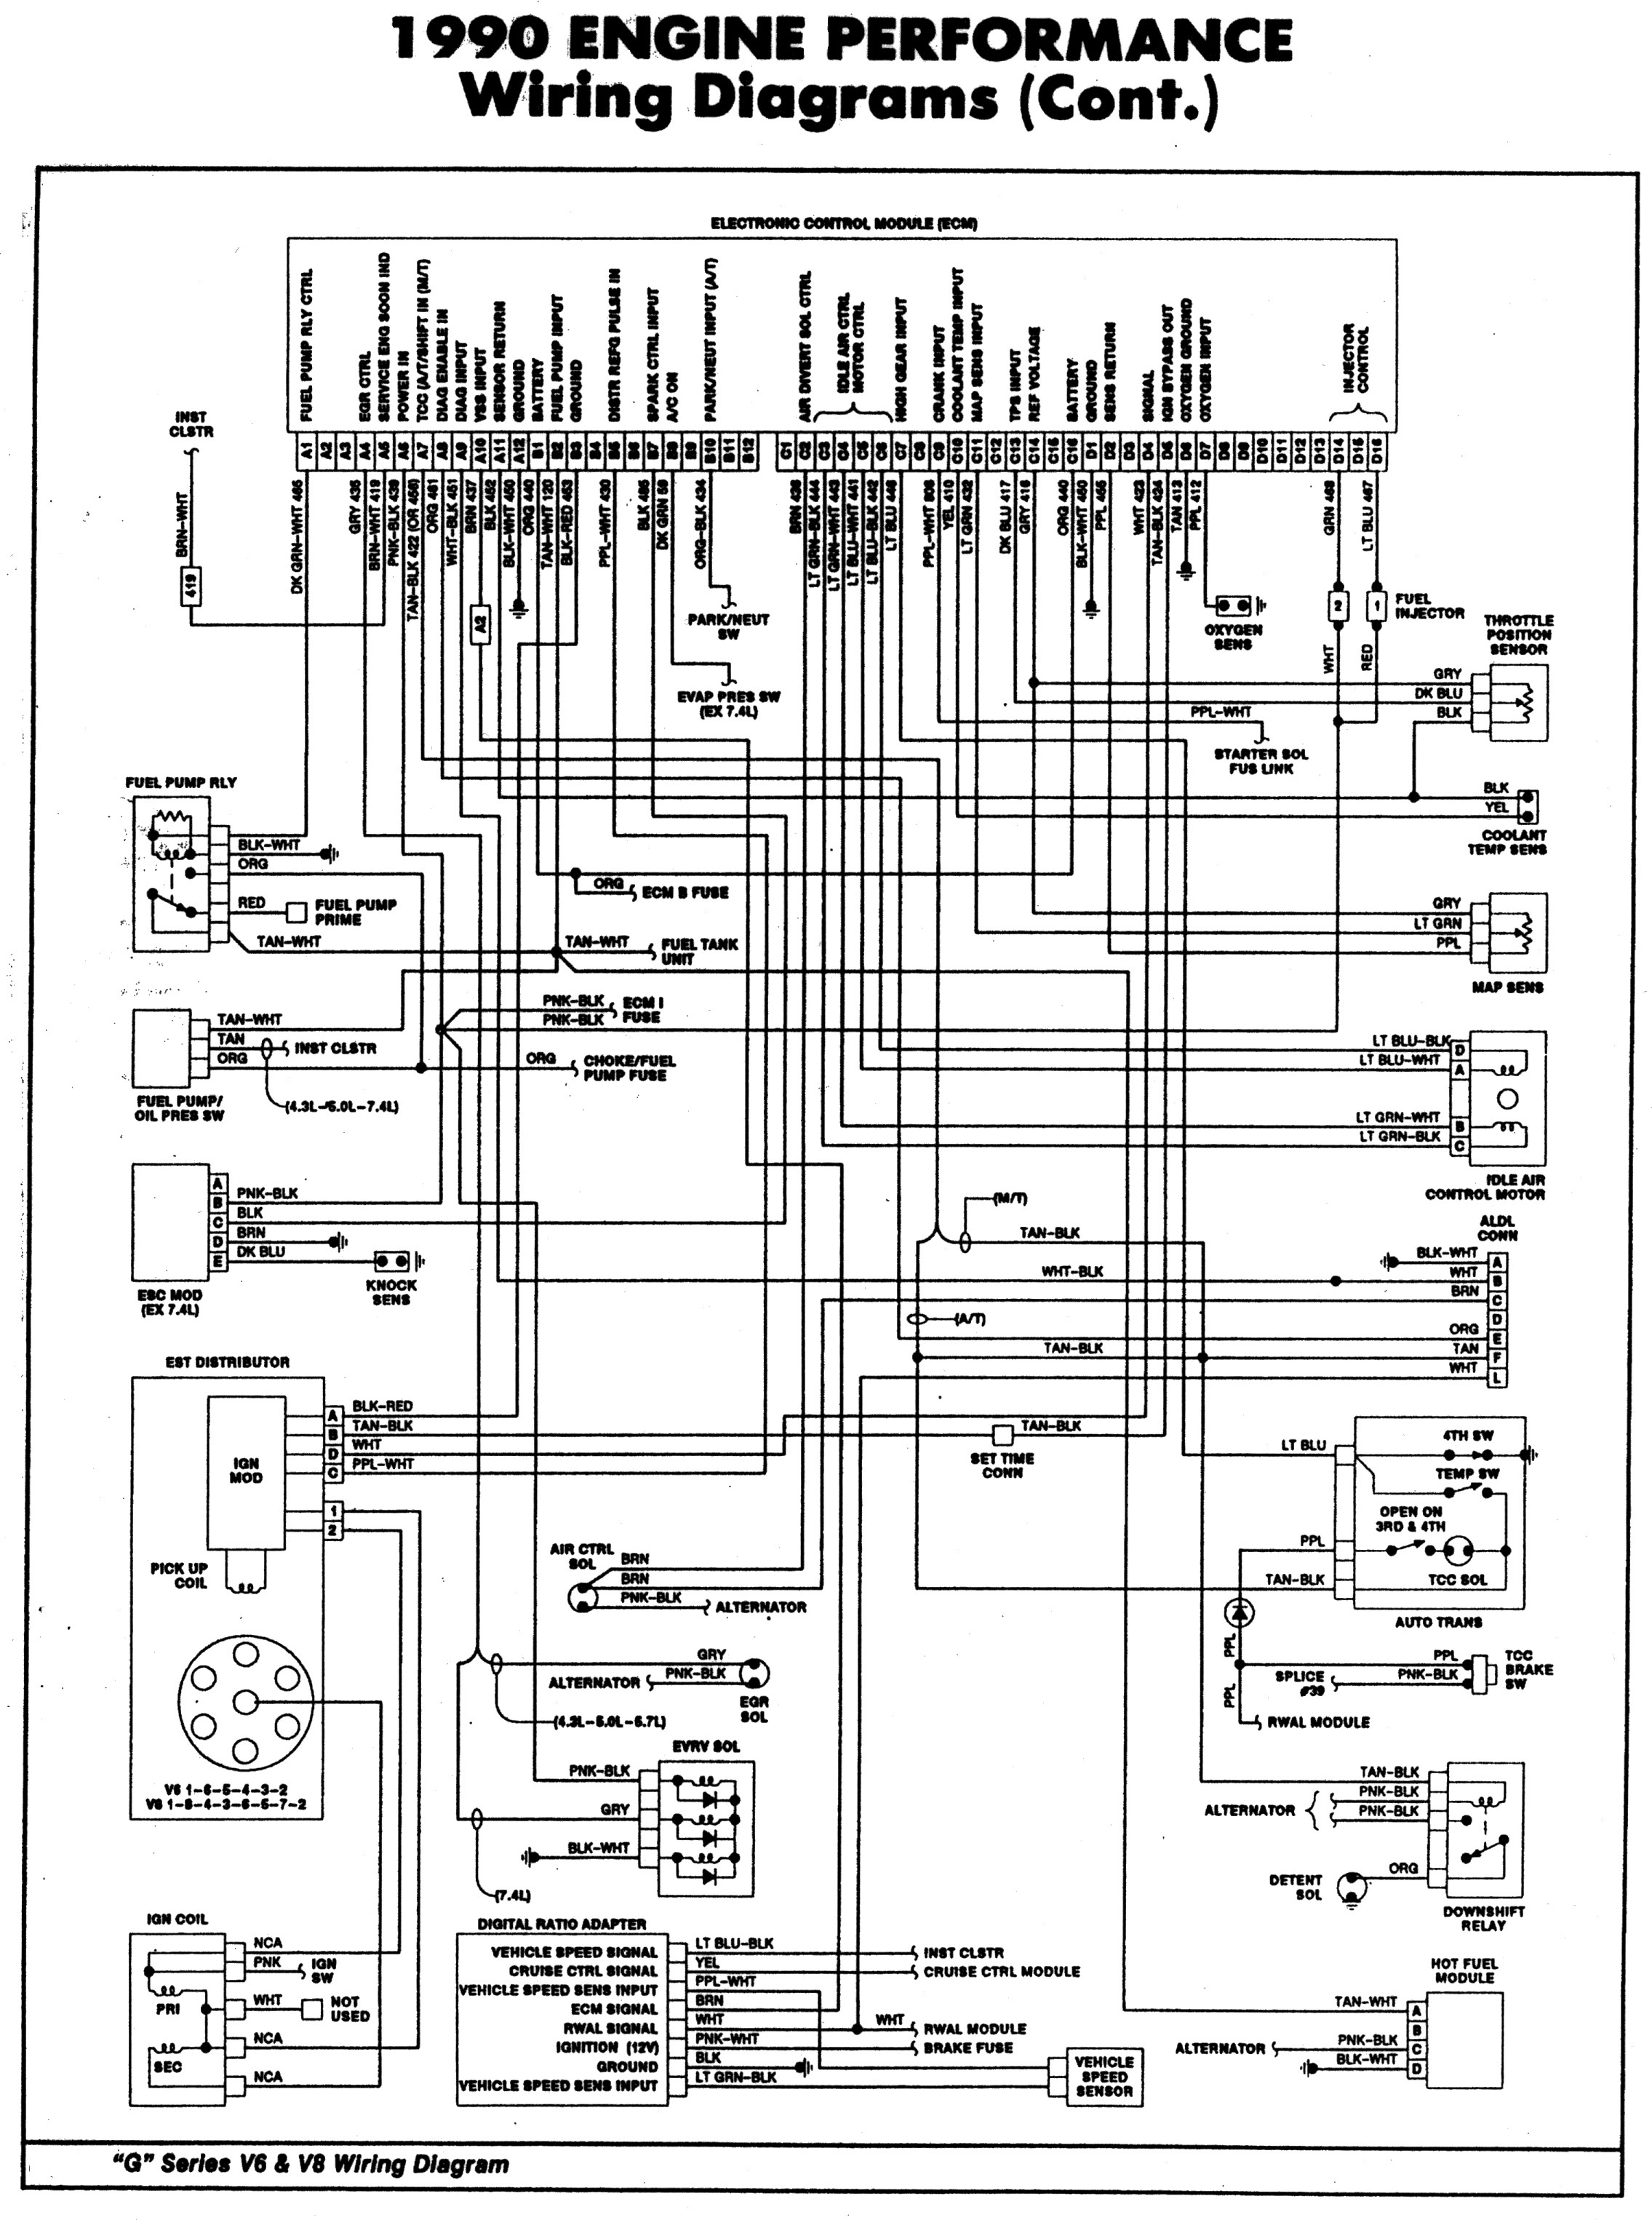 1988 chevy k1500 wiring diagram schema wiring diagram 1988 chevy k1500 tail light wiring diagram 1988 chevy k1500 wiring diagram [ 2271 x 3051 Pixel ]